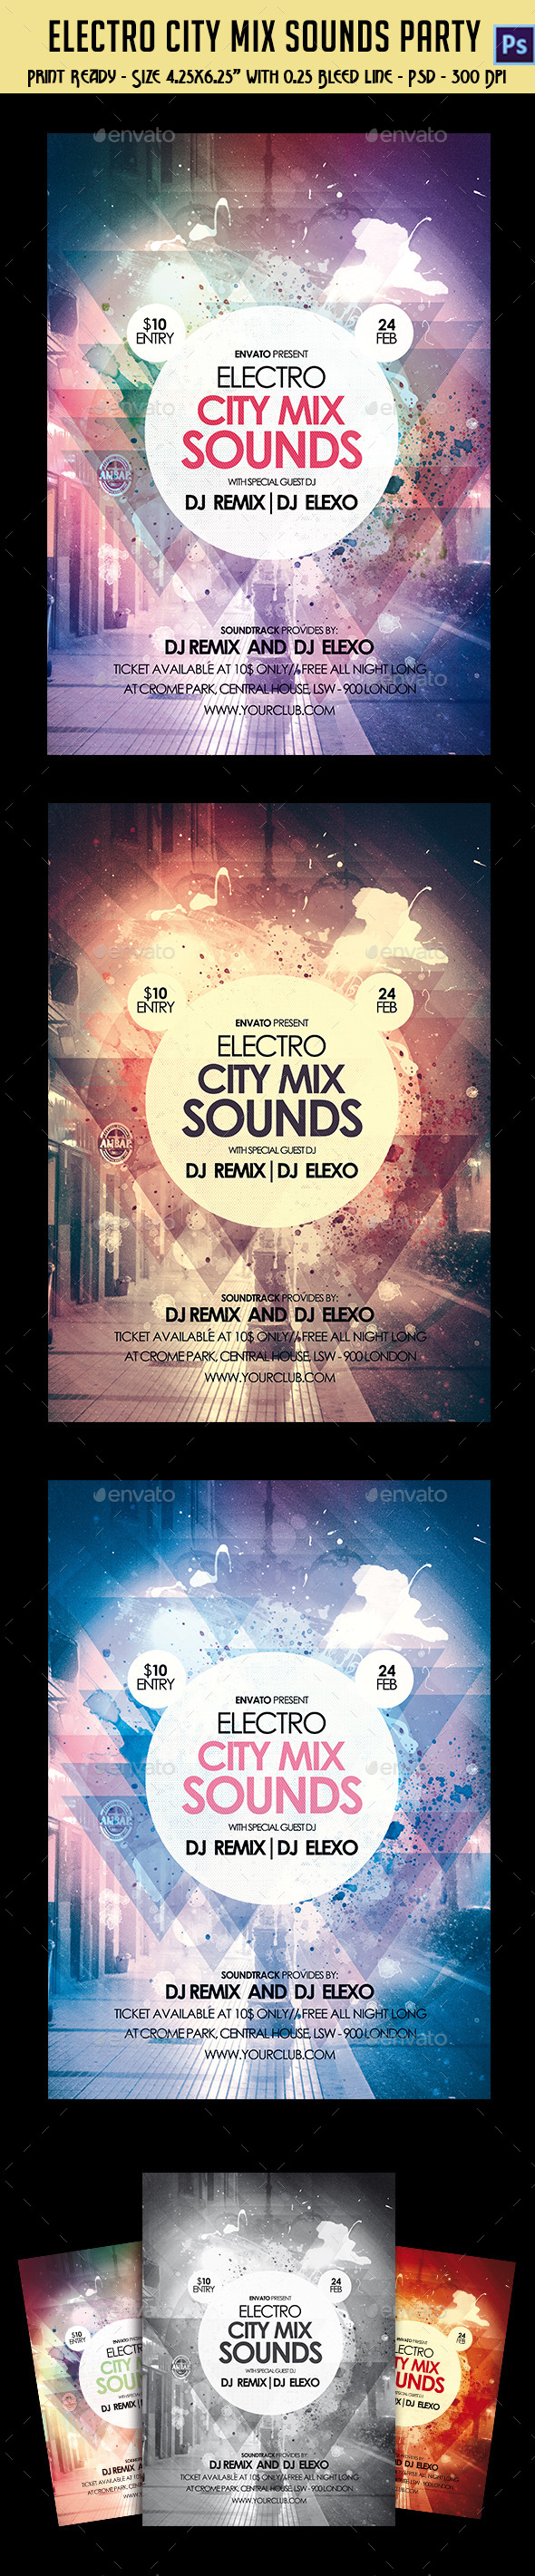 Electro City Mix Sounds Party Flyer - Clubs & Parties Events